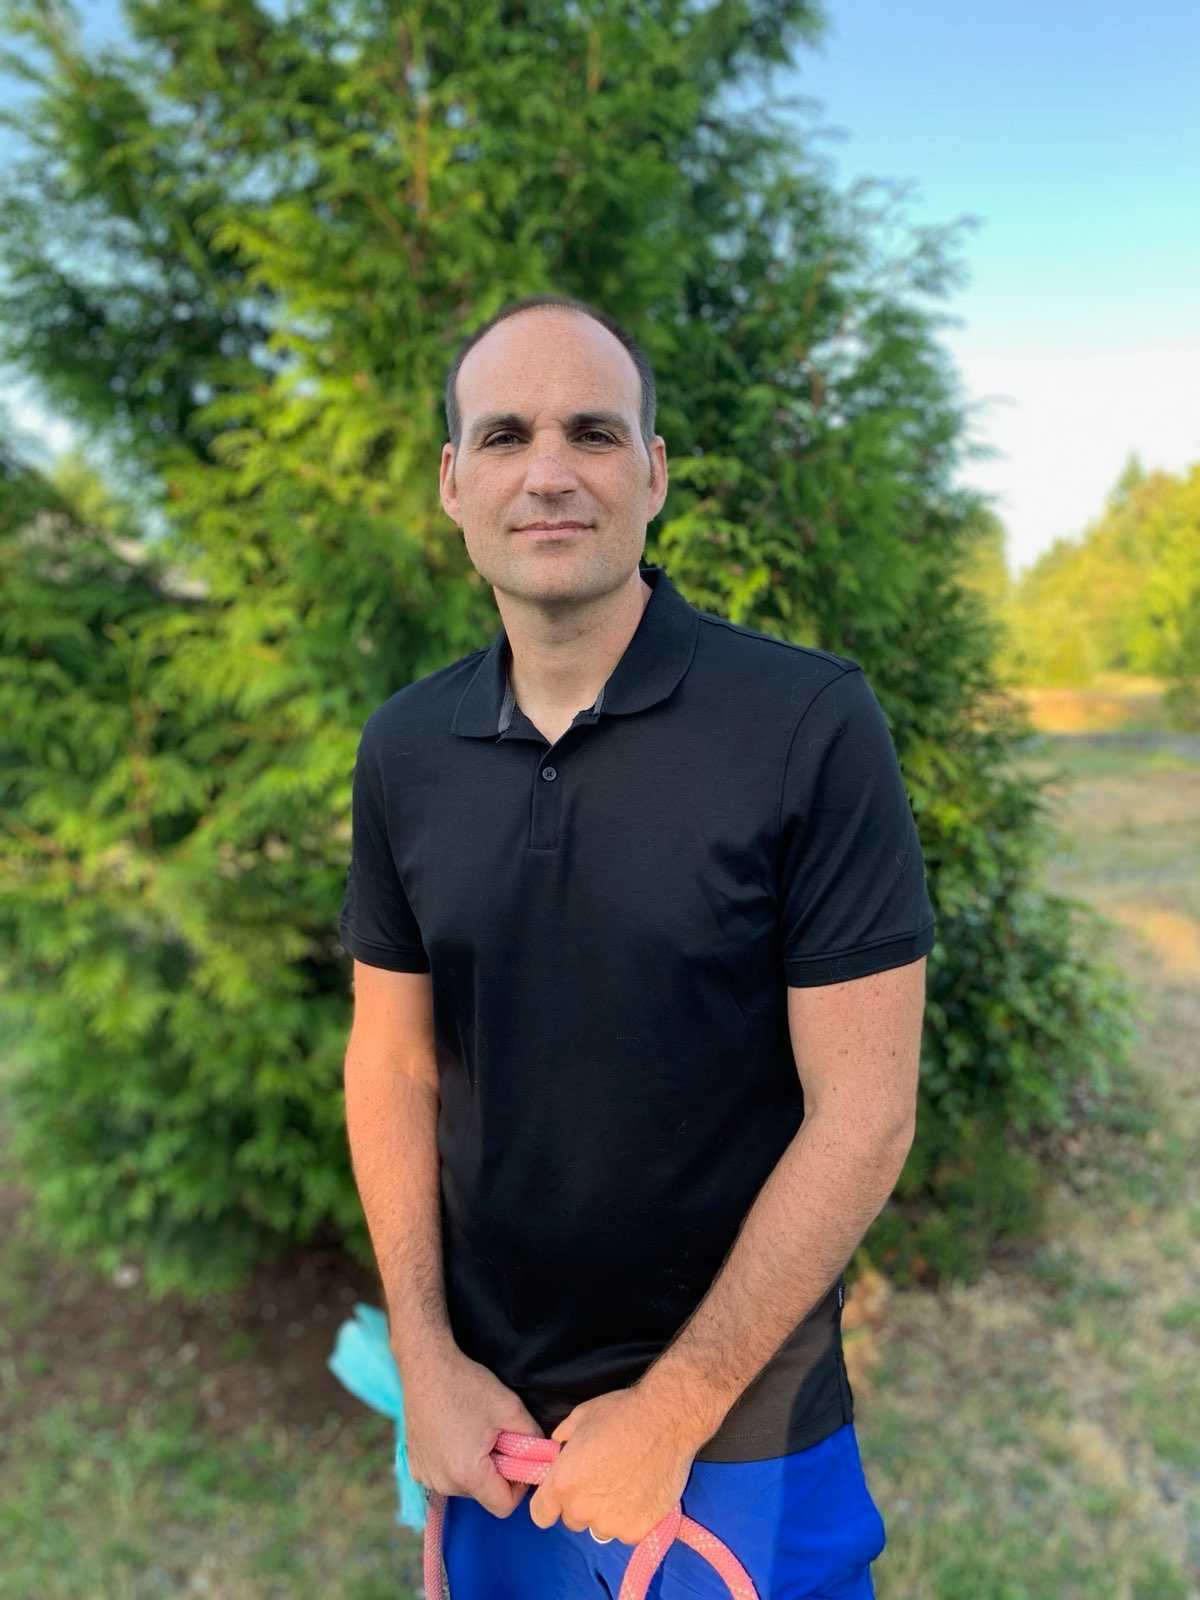 a man in a black polo shirt standing in front of a tree